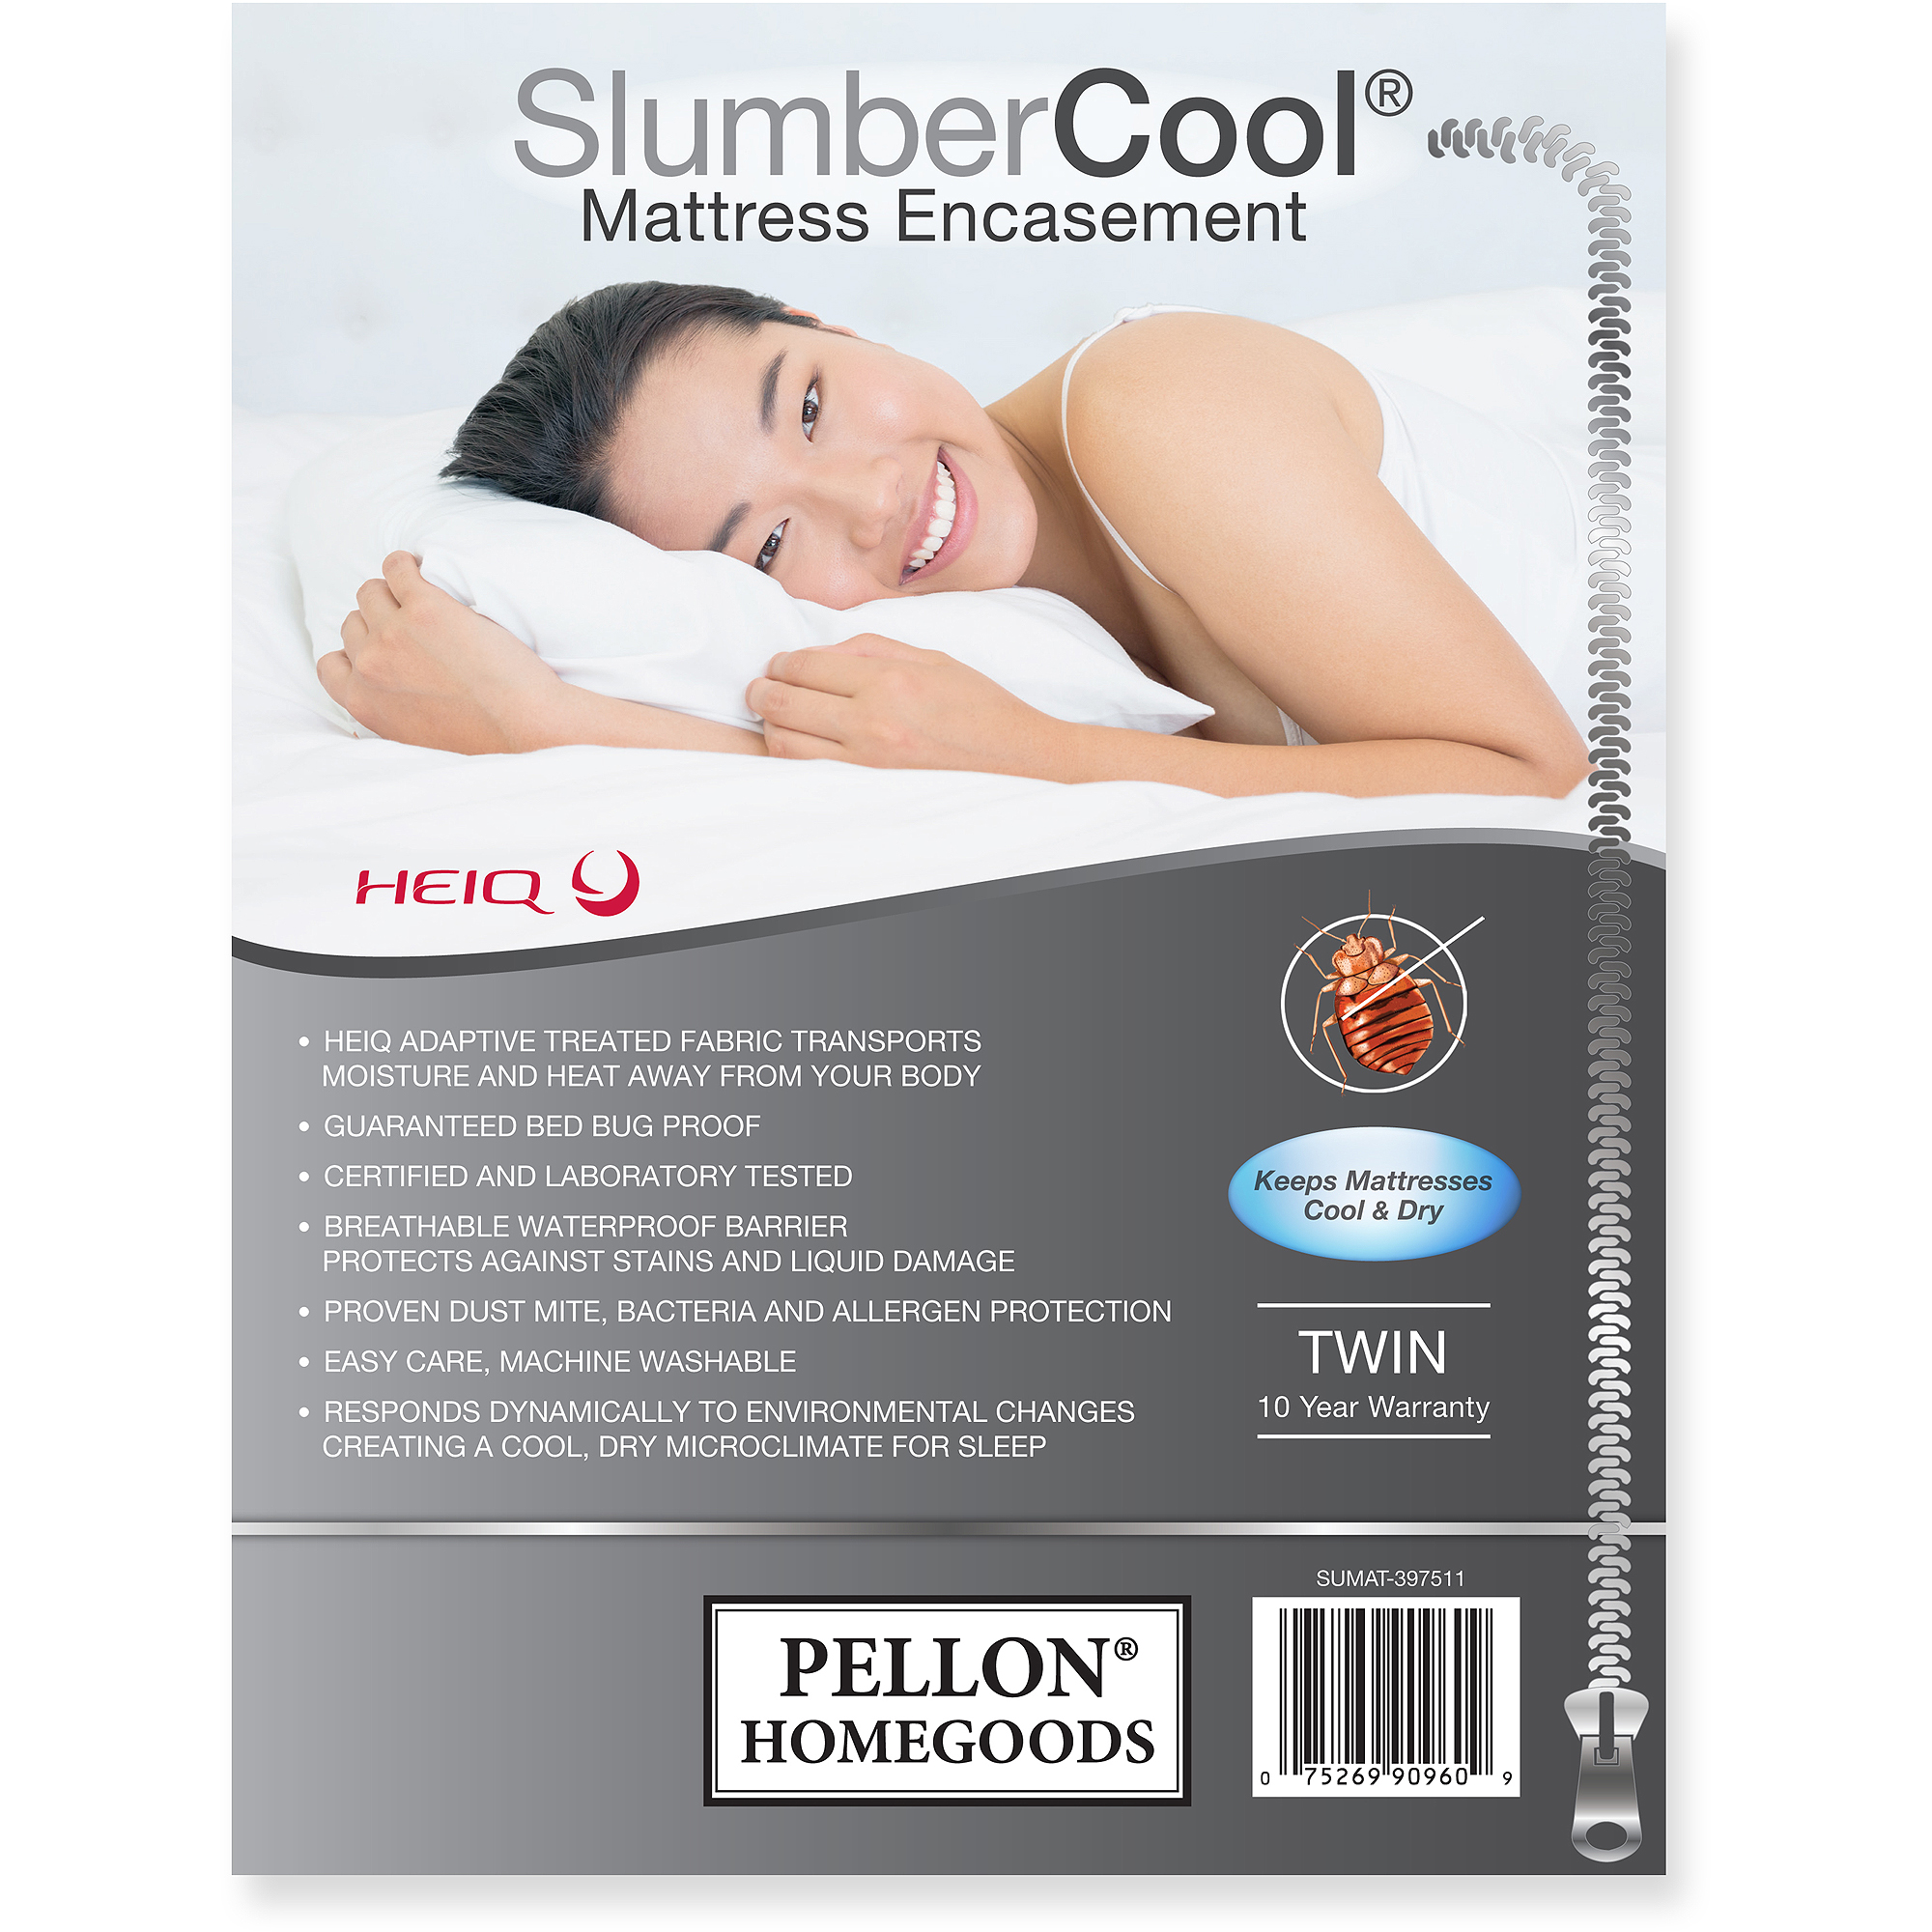 Pellon Slumber Cool Mattress Encasement